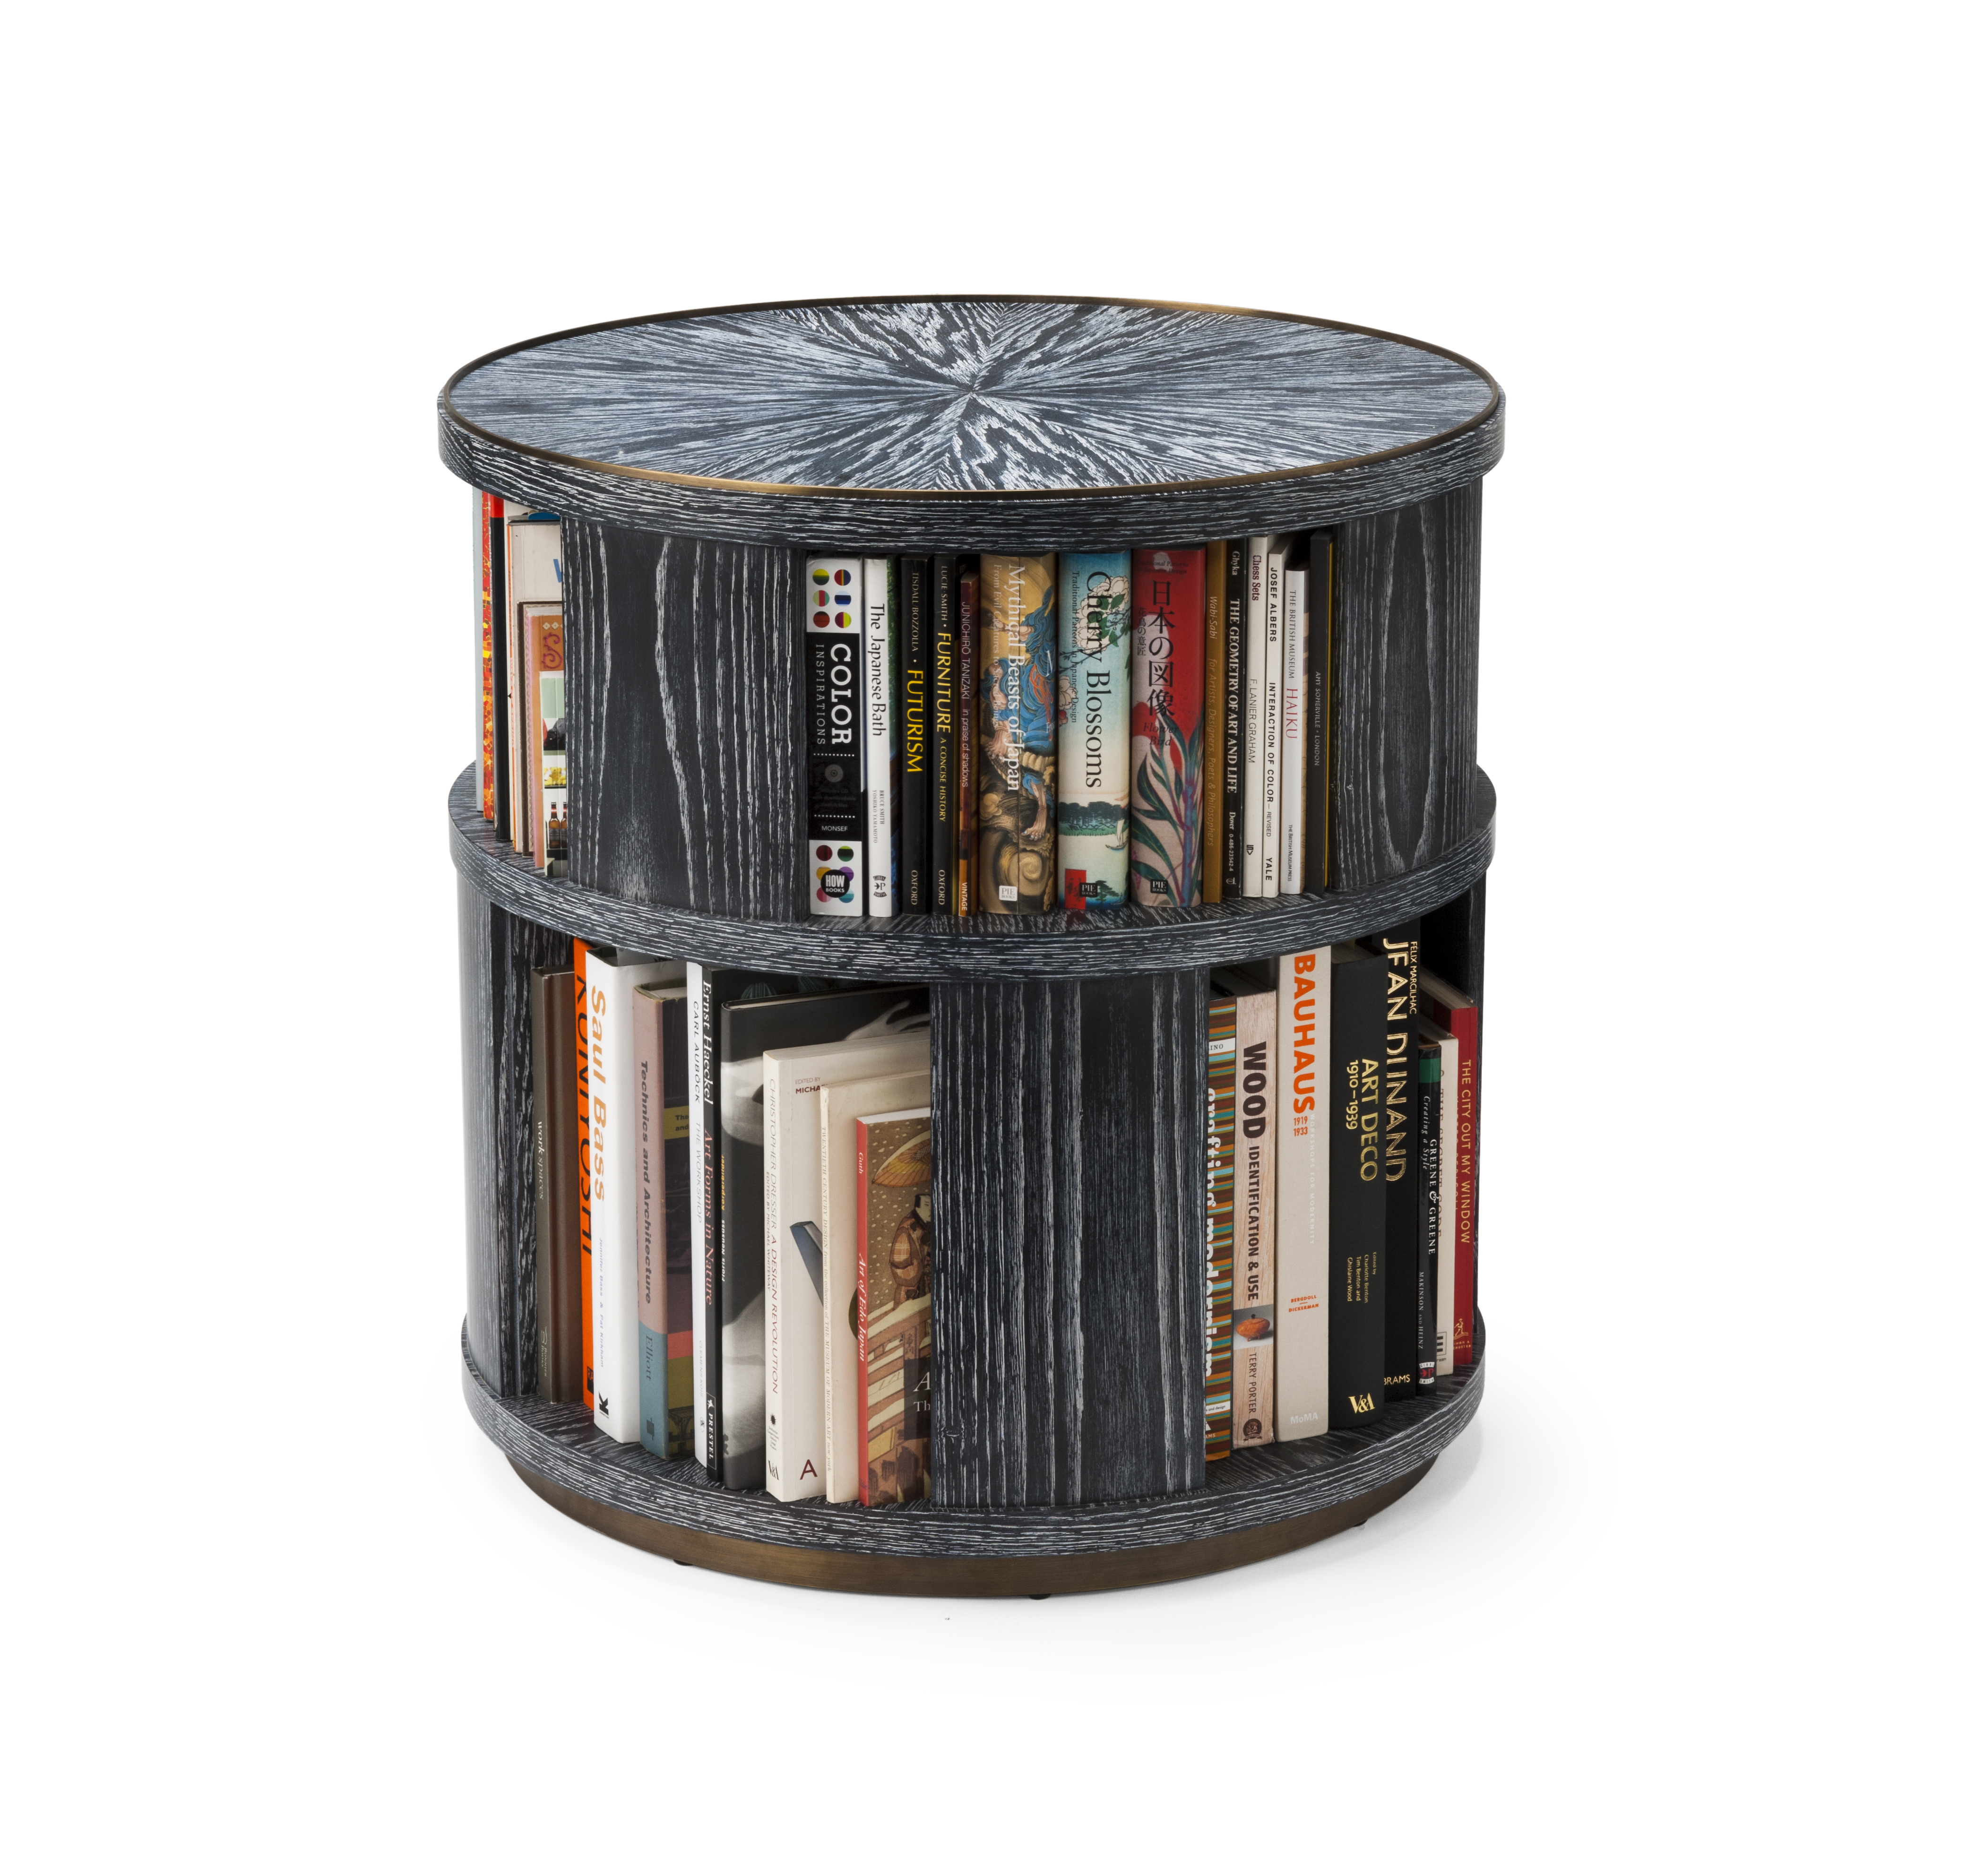 garden two today bookcase tower shipping overstock free sided product rotating black spinning home